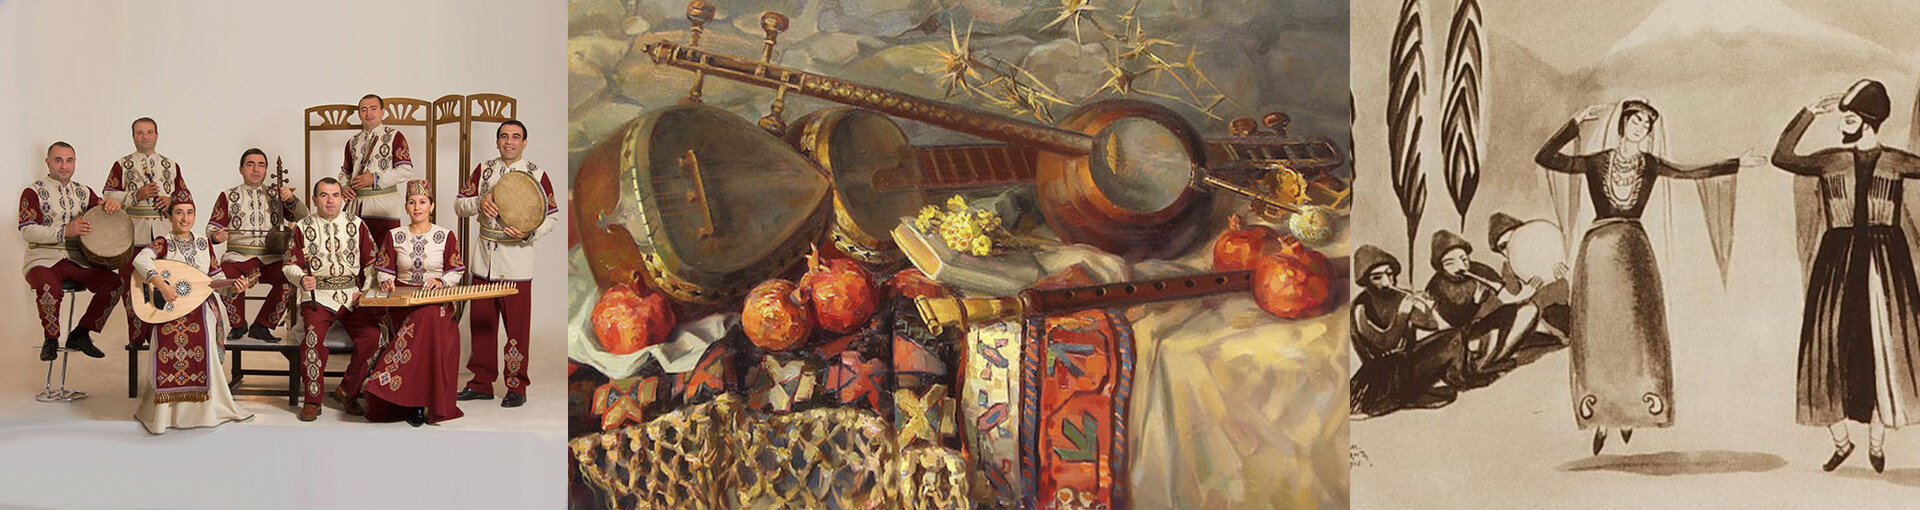 The Armenian music